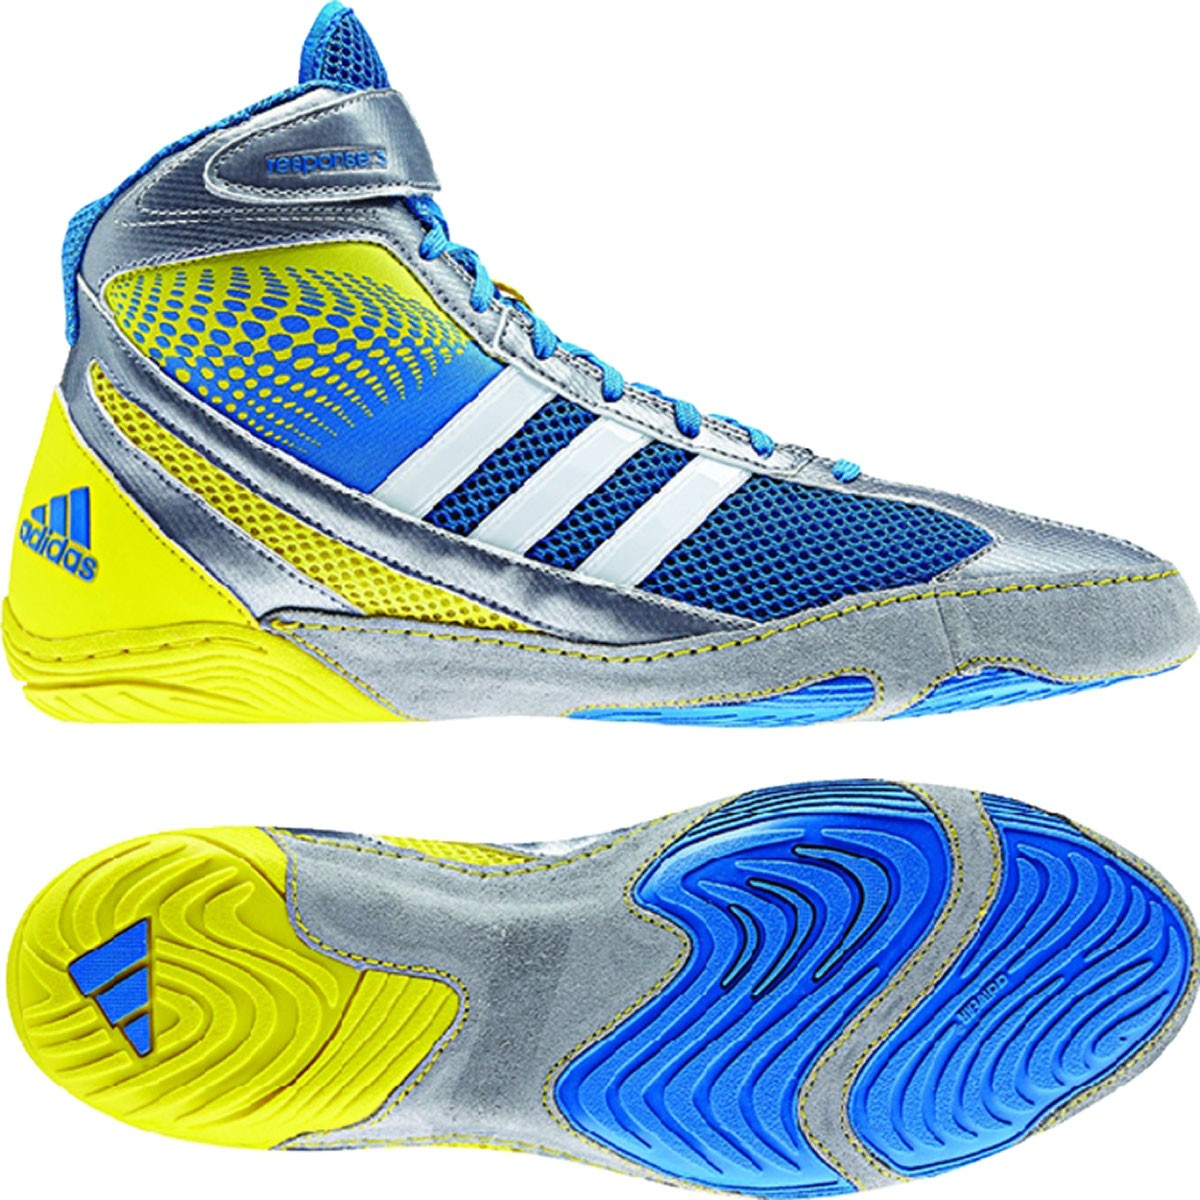 new product 8d560 9a77a Image is loading Adidas-Response-3-1-Men-039-s-Wrestling-